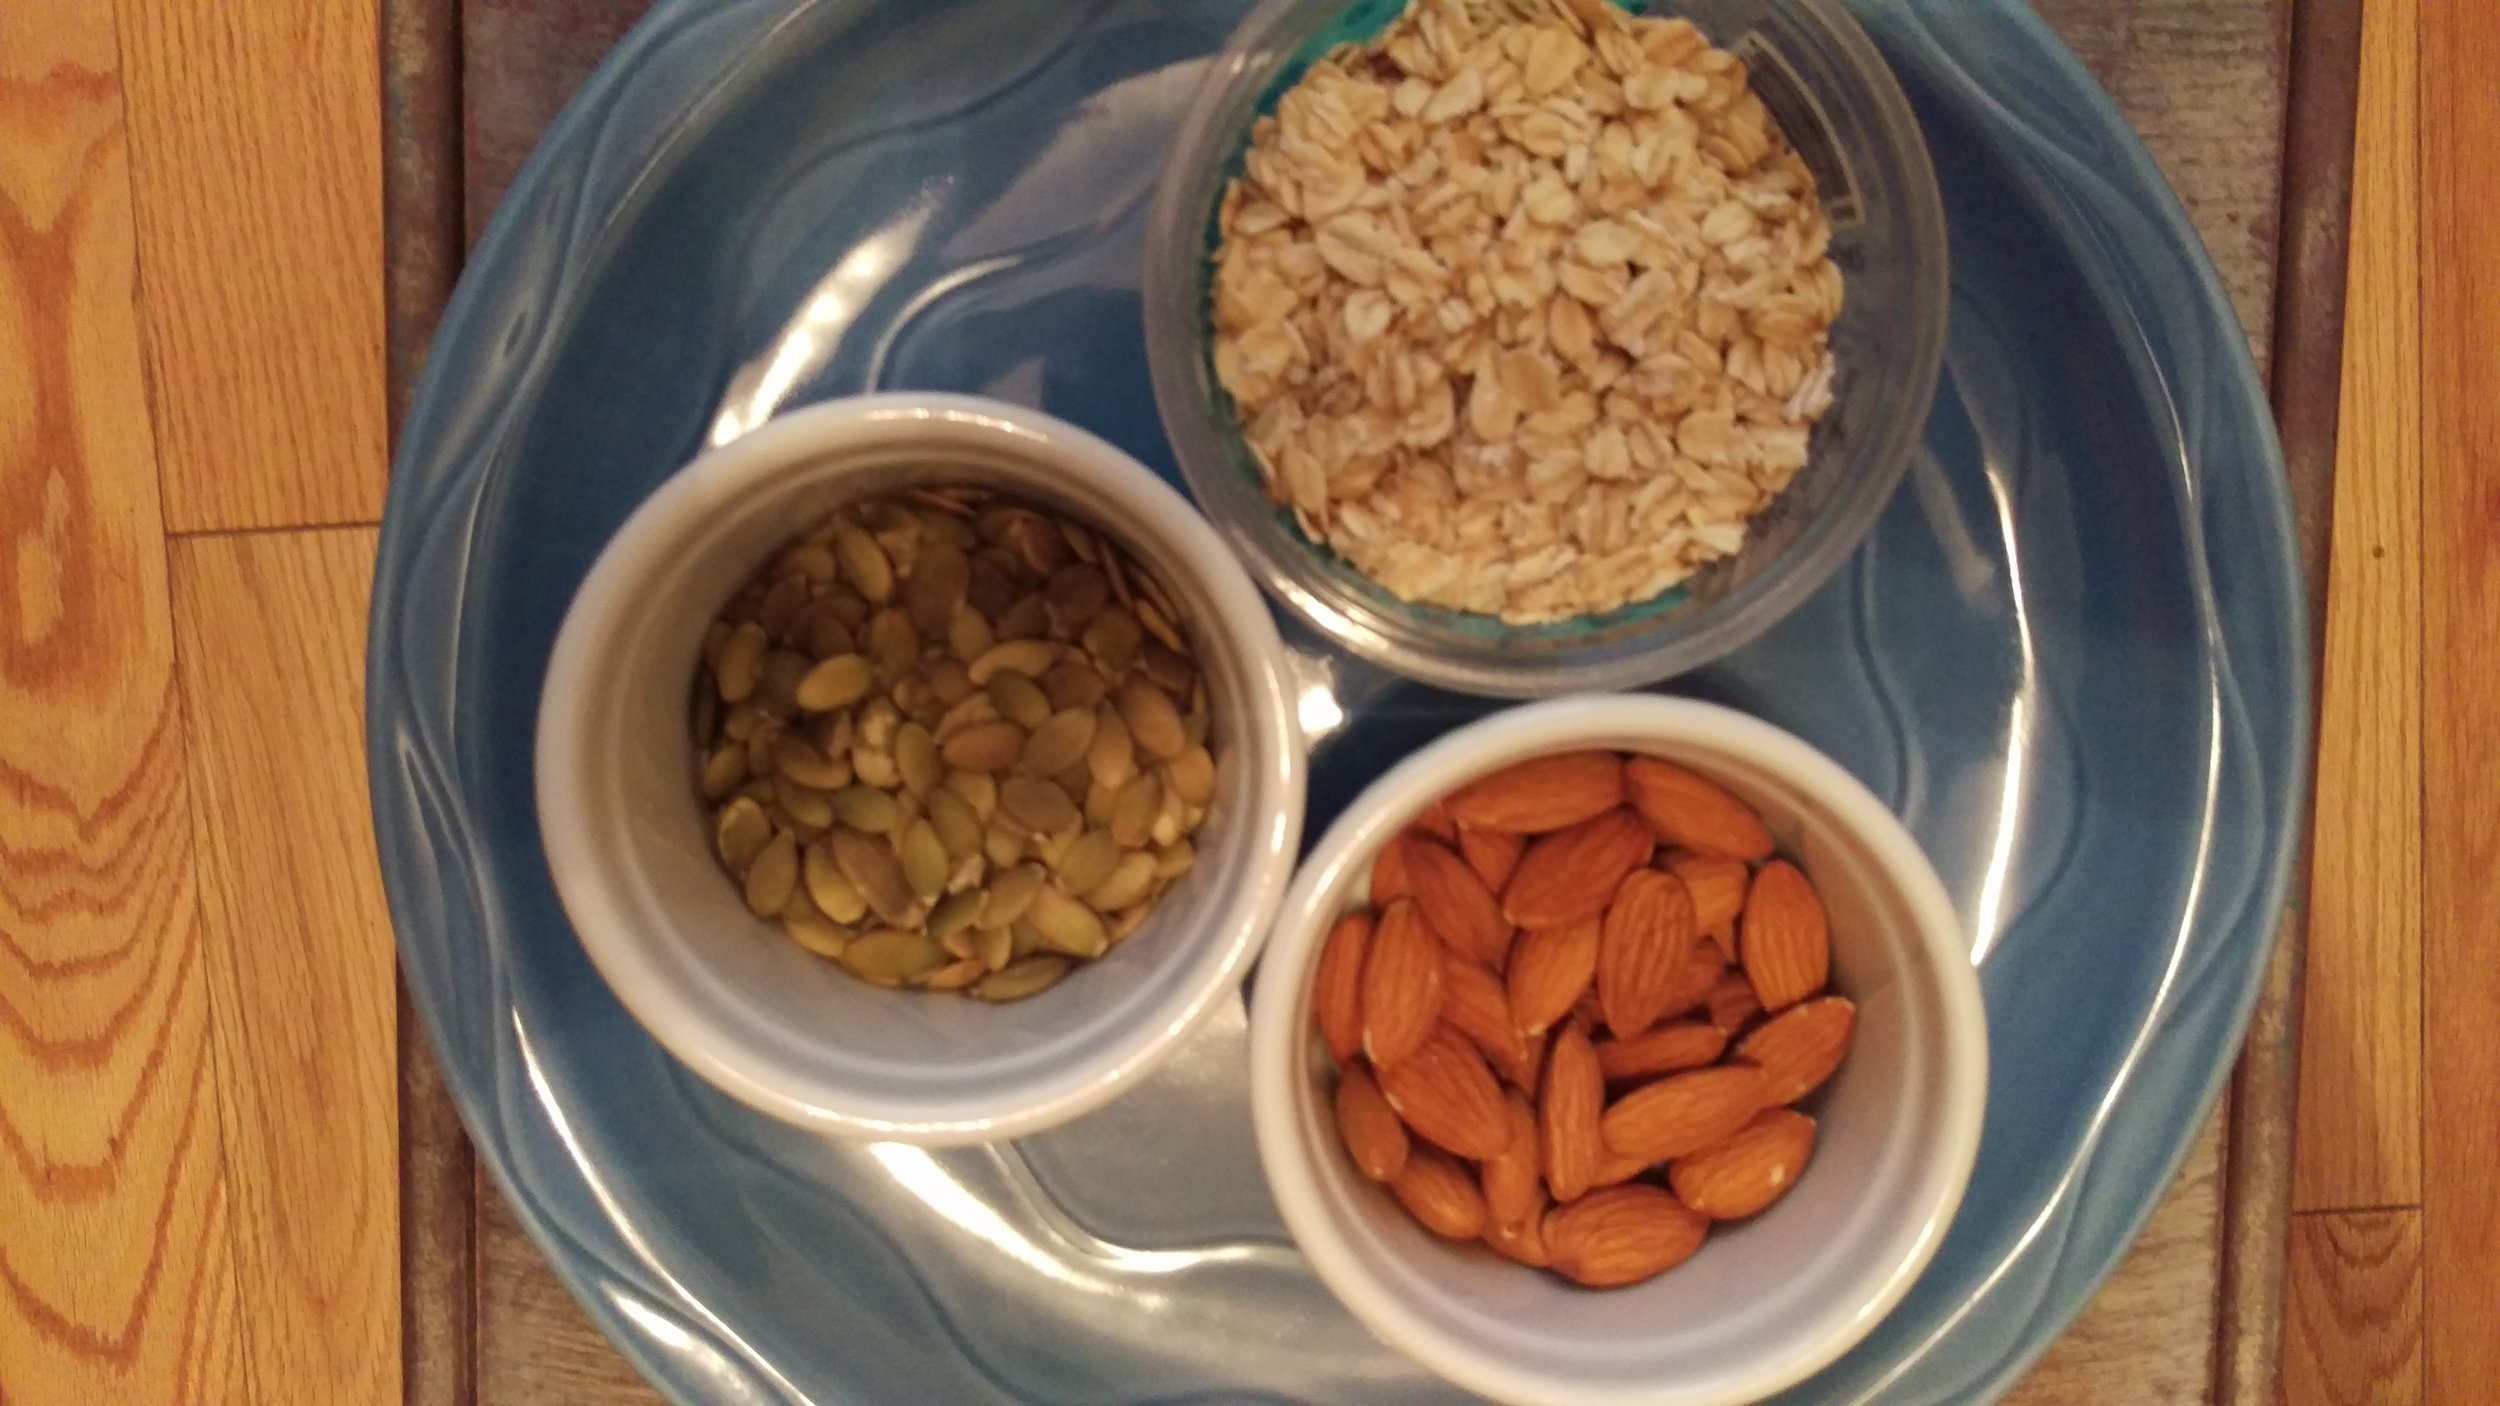 Almonds, Pumpkin seeds, and Oatmeal